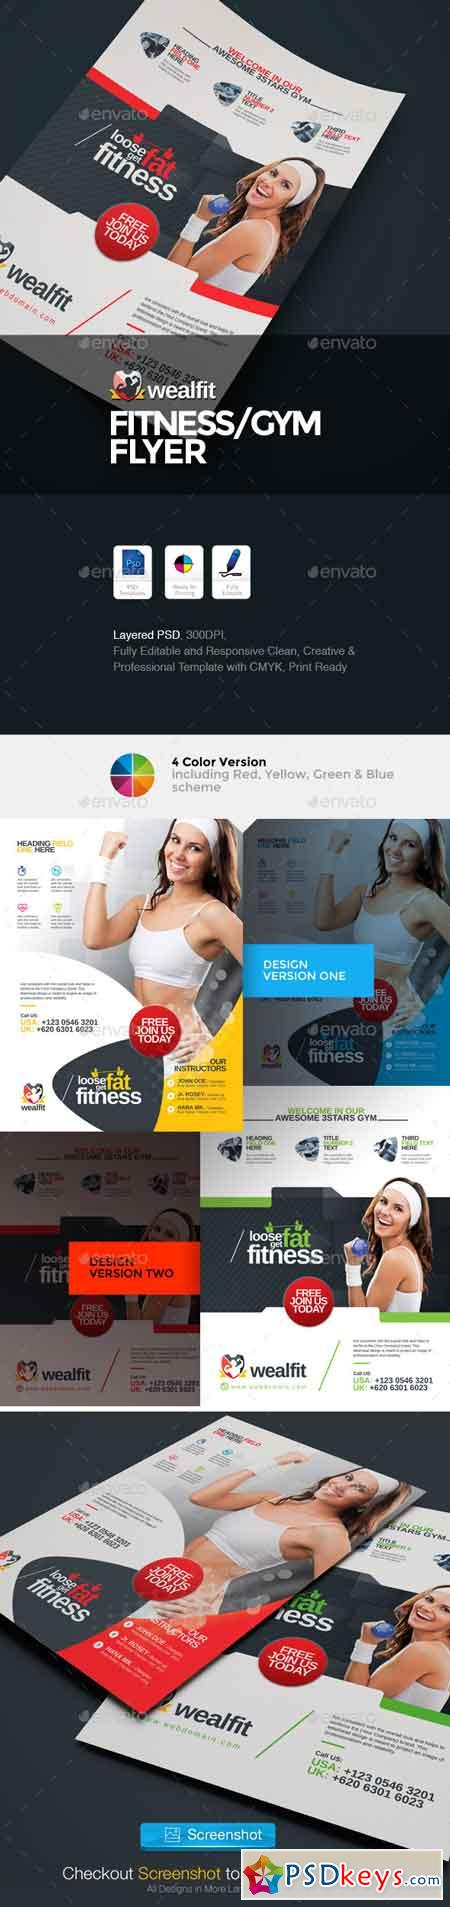 WealFit Fitness - Gym Flyer 10065074